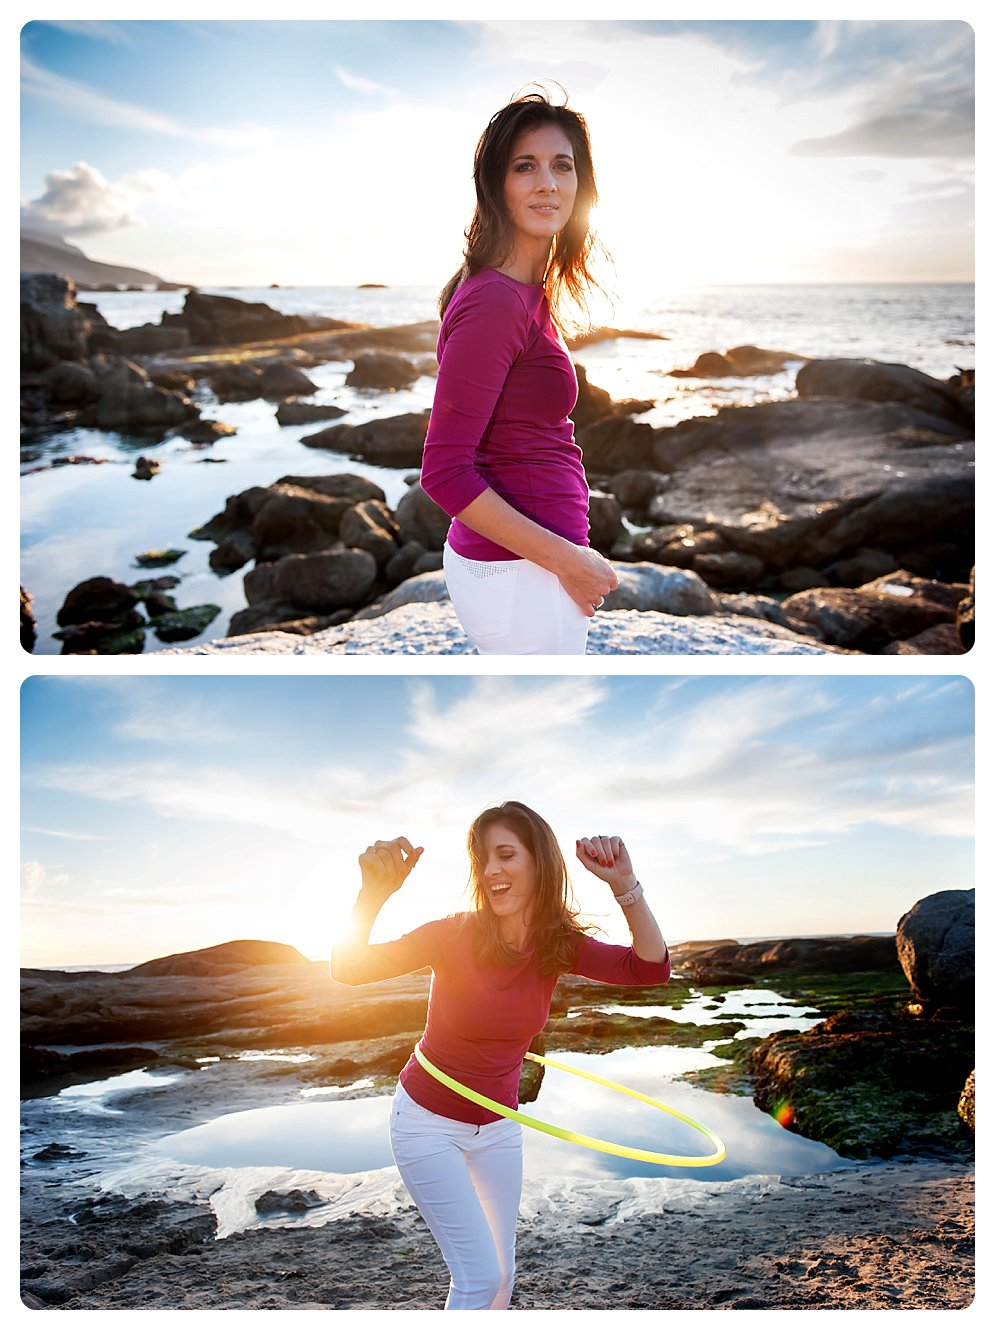 cape town event photography business branding profile portraits-009